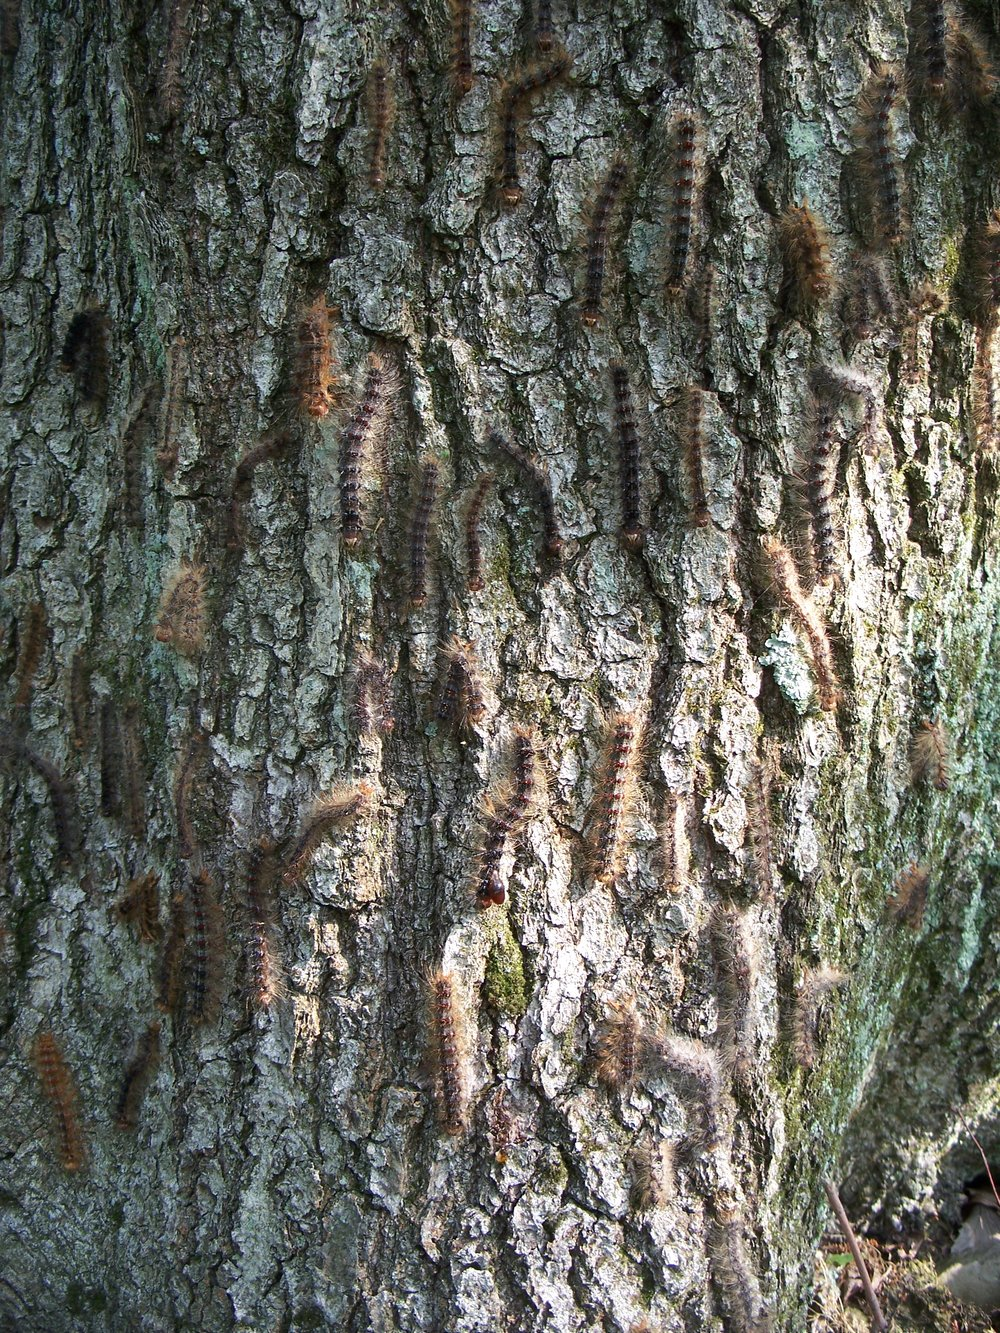 S4 Gypsy moth caterpillars.jpg